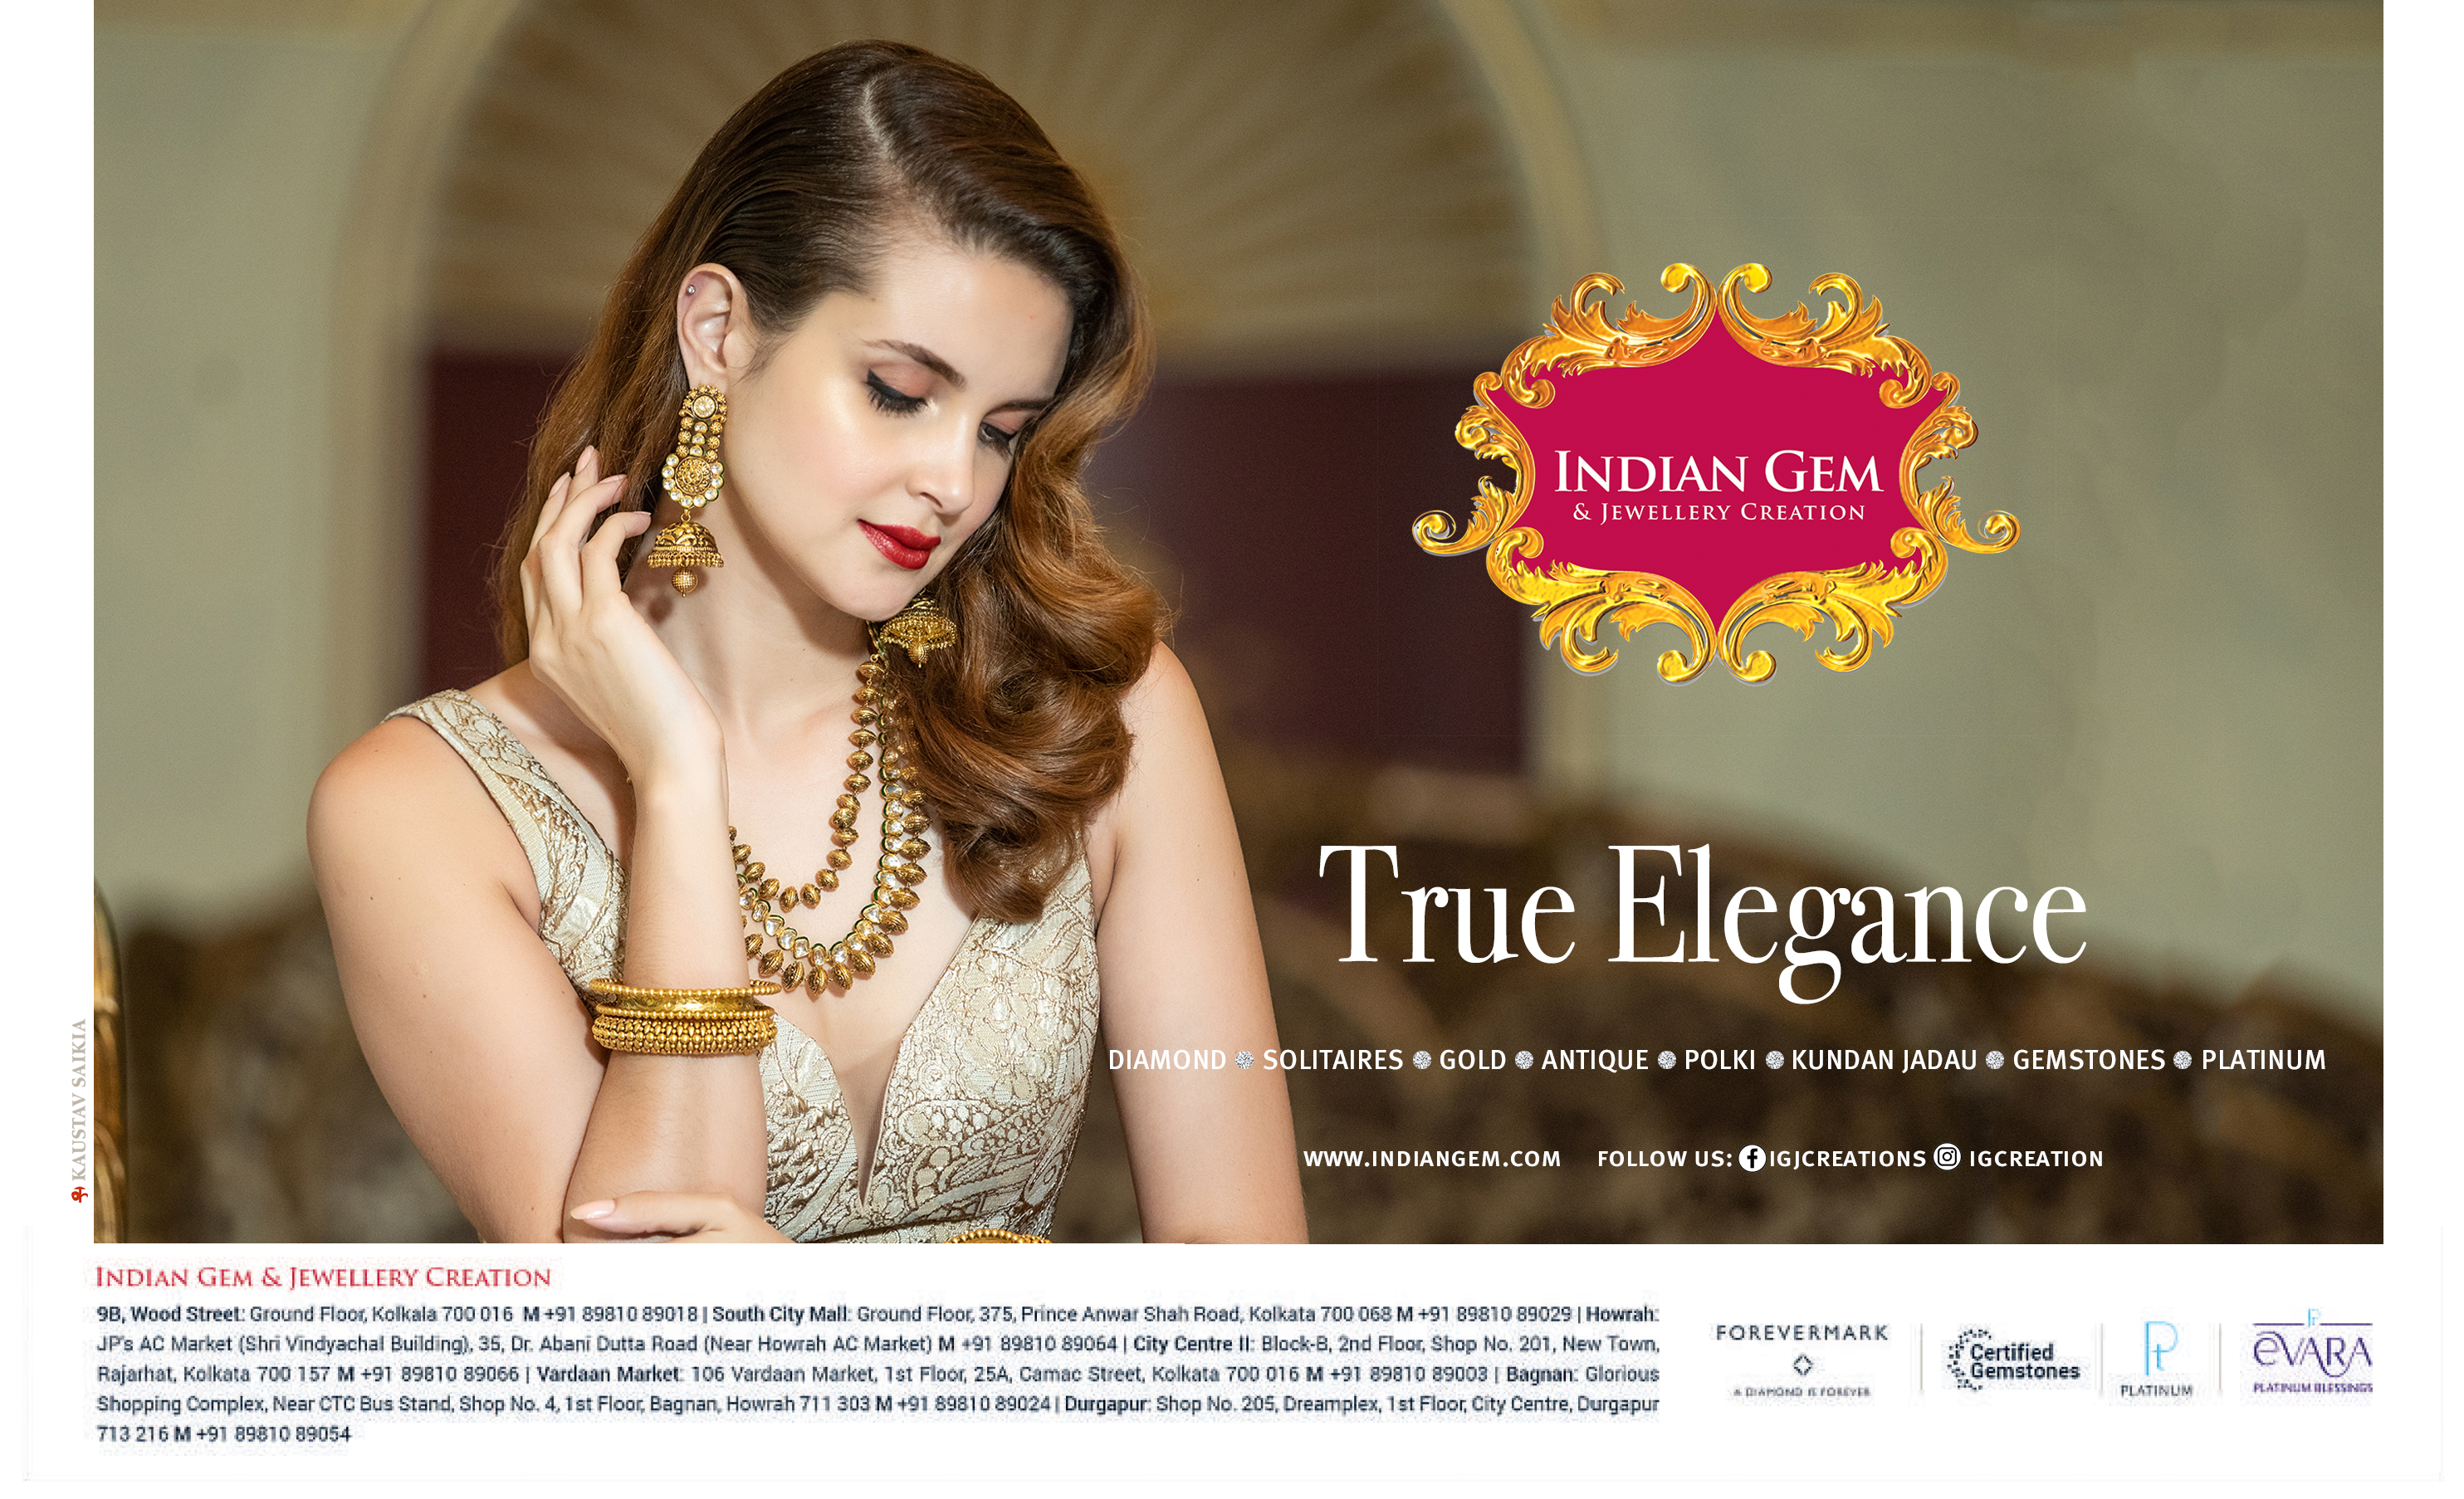 Indian Gem & Jewellery 2019